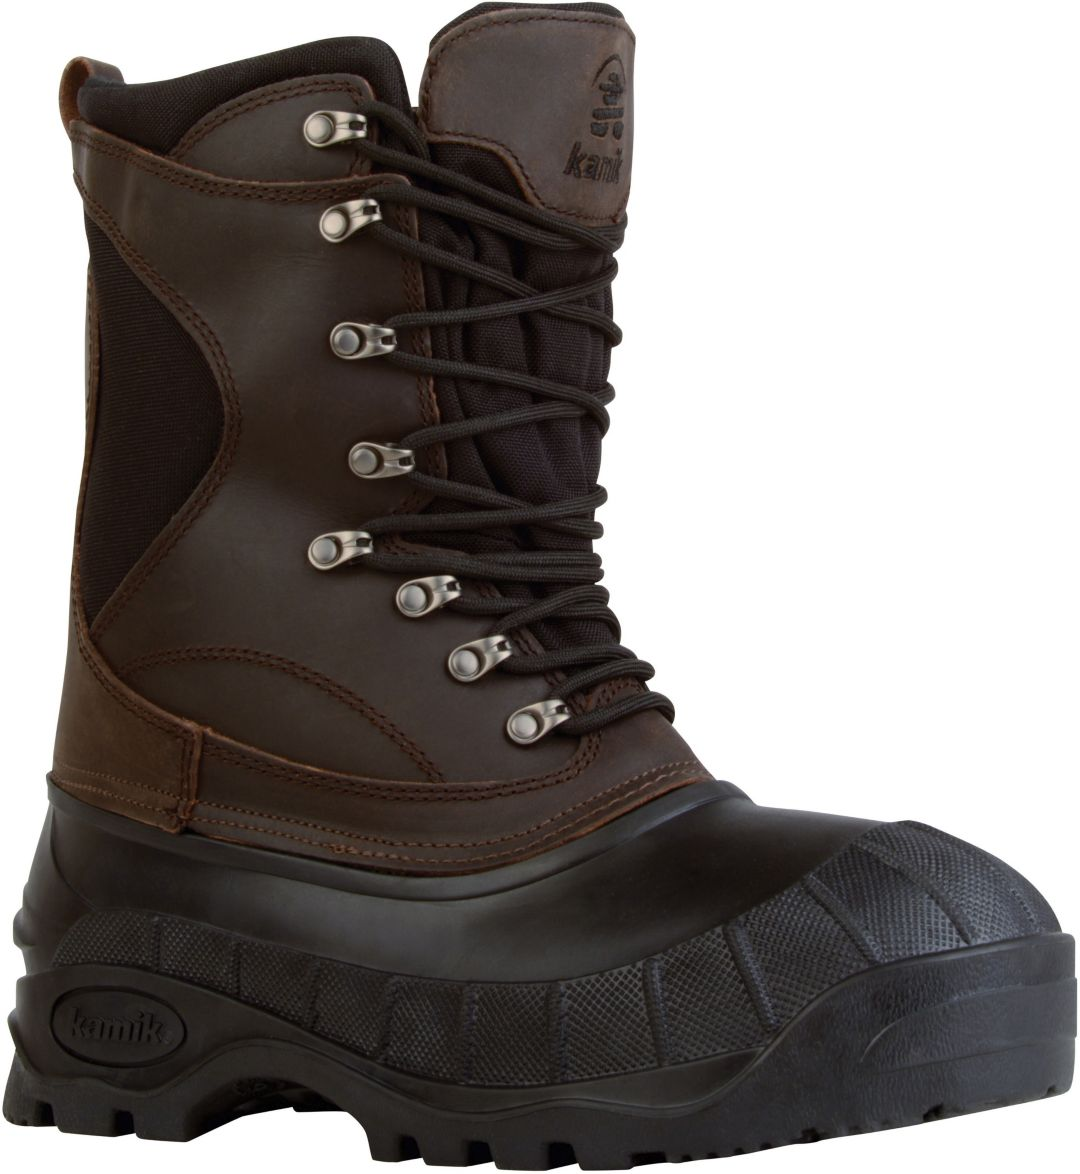 complete in specifications wide selection of colors 100% quality quarantee Kamik Men's Cody Insulated Waterproof Winter Boots